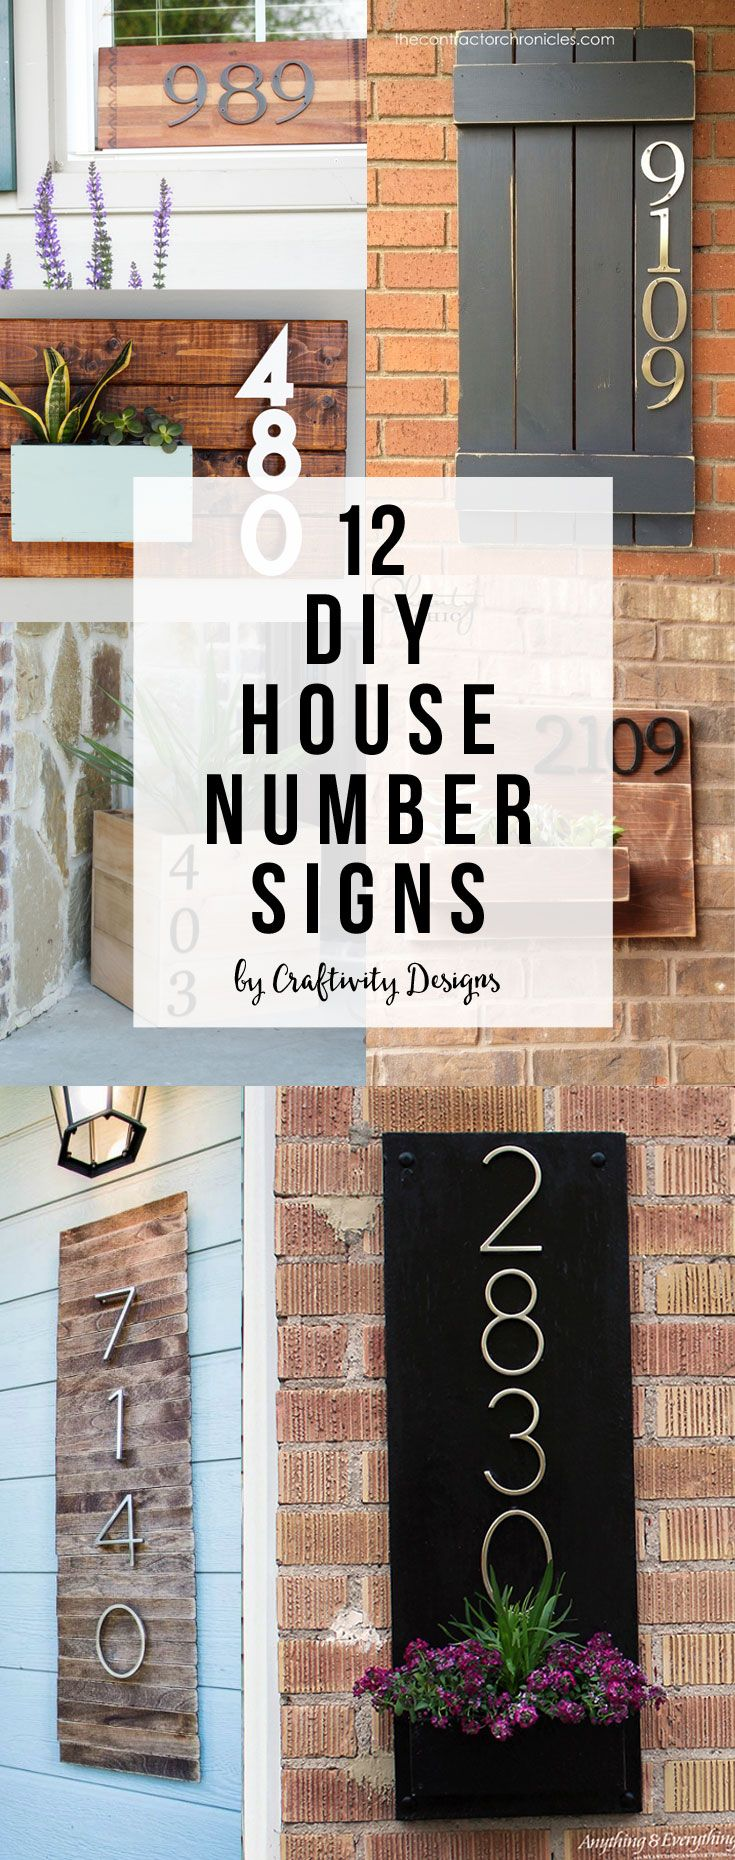 How To Make A Diy House Number Sign In Minutes Diy House